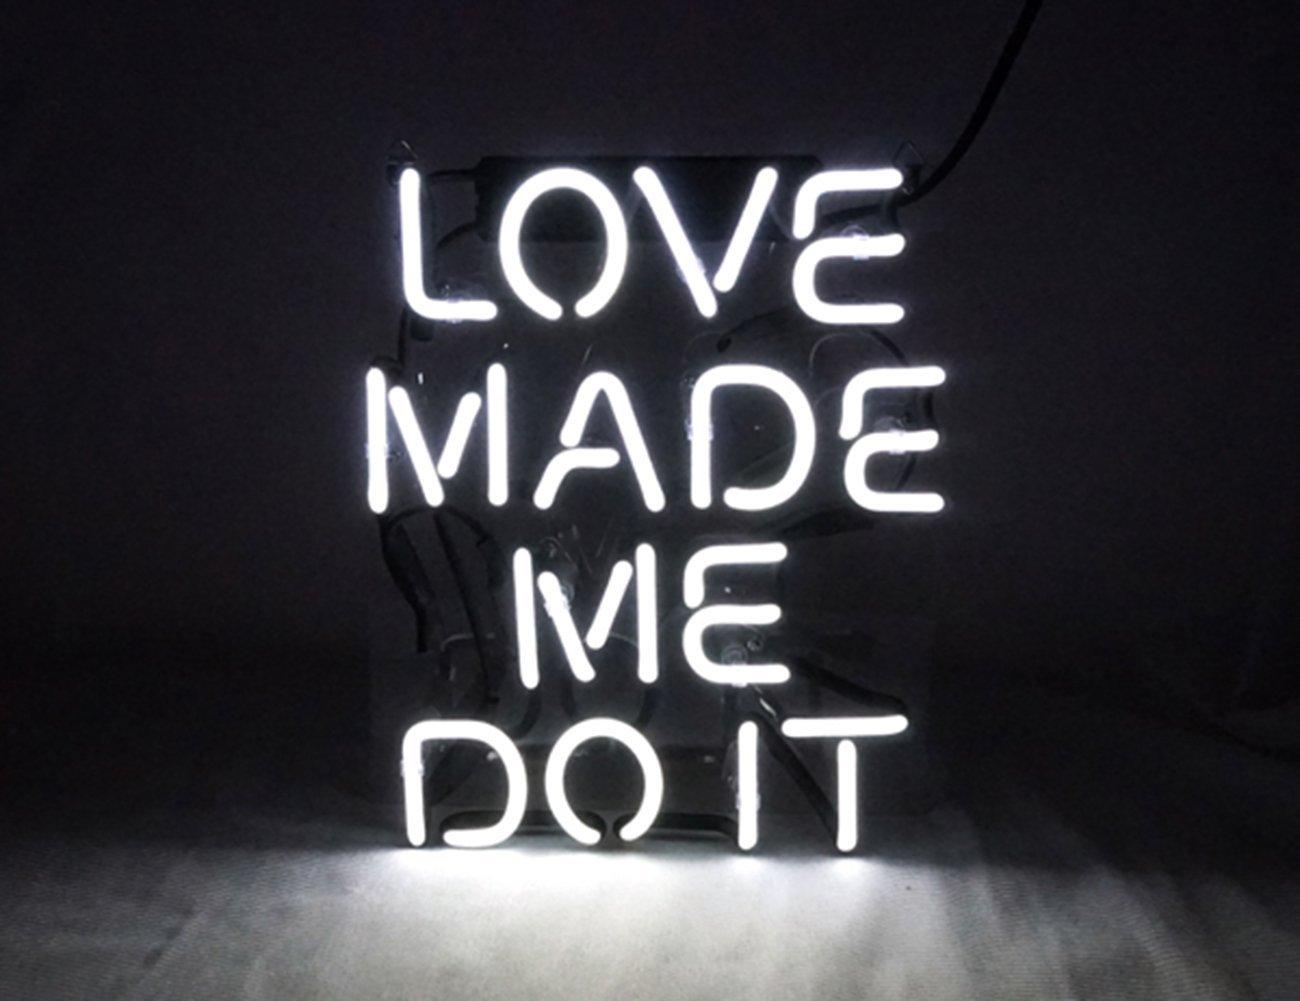 2018 love made me doit real glass neon light sign home beer bar pub 2018 love made me doit real glass neon light sign home beer bar pub recreation room game room windows garage wall sign from loveneon 6232 dhgate aloadofball Choice Image